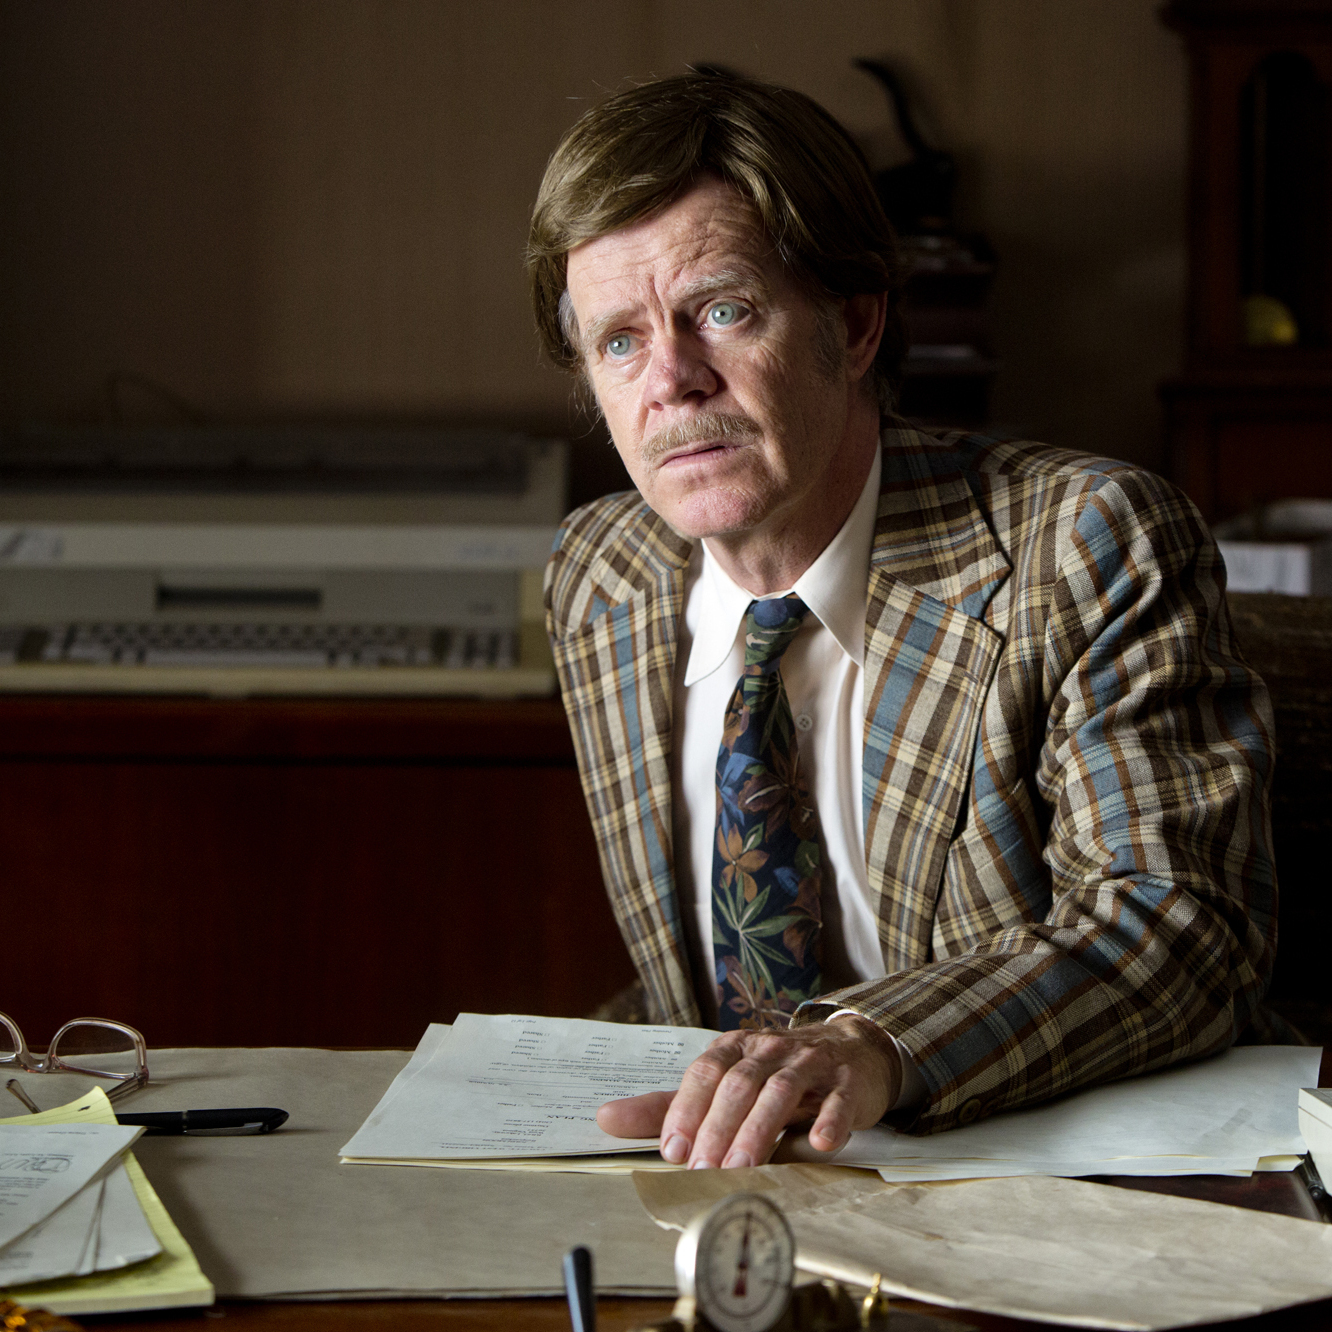 In the more compelling but less complete of the film's two story lines, John's low-rent lawyer (William H. Macy) is helping him fight his wife's divorce action.